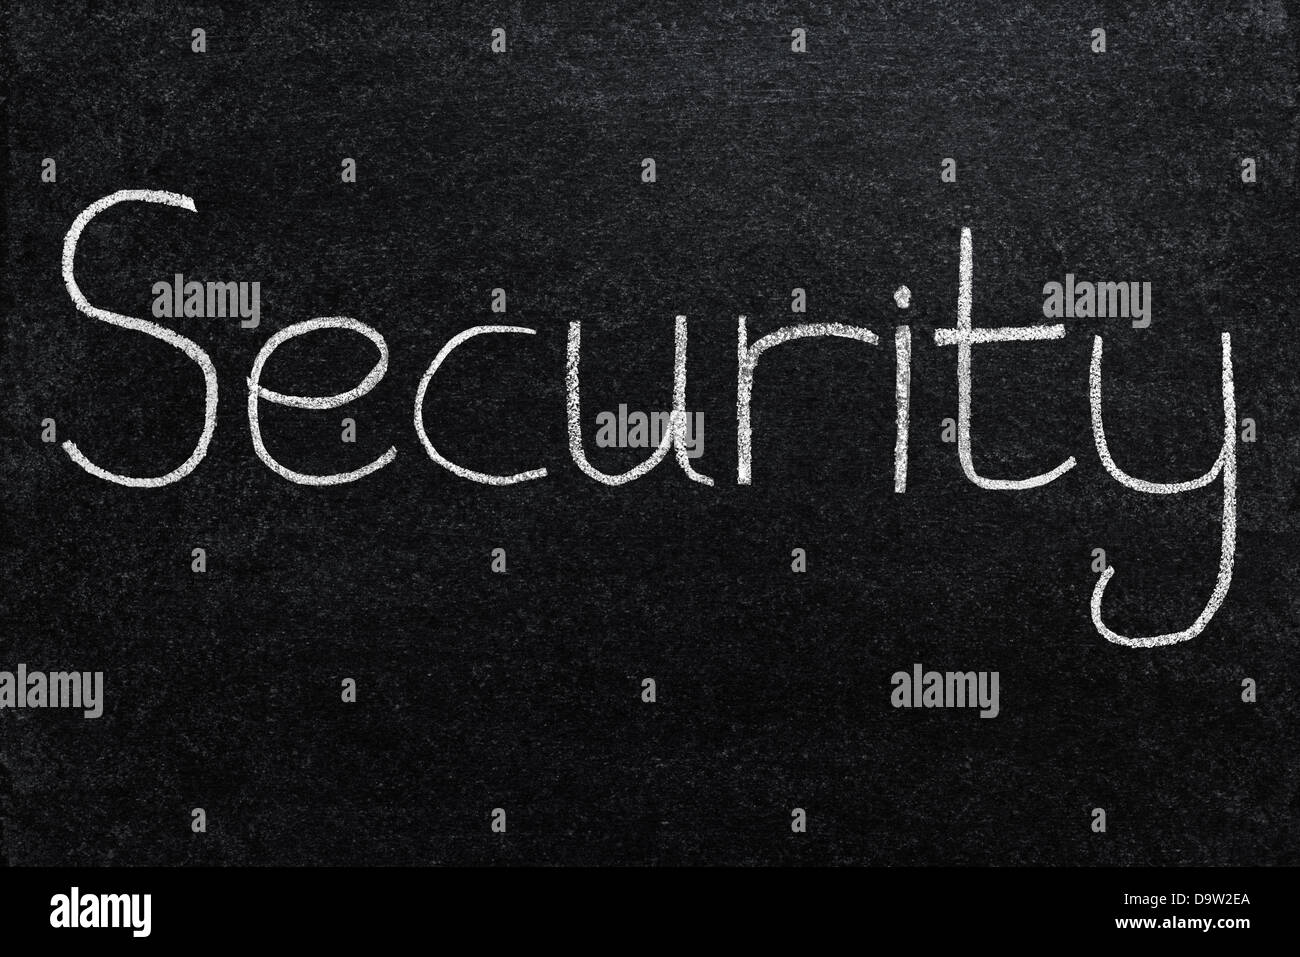 Security written with white chalk on a blackboard. - Stock Image